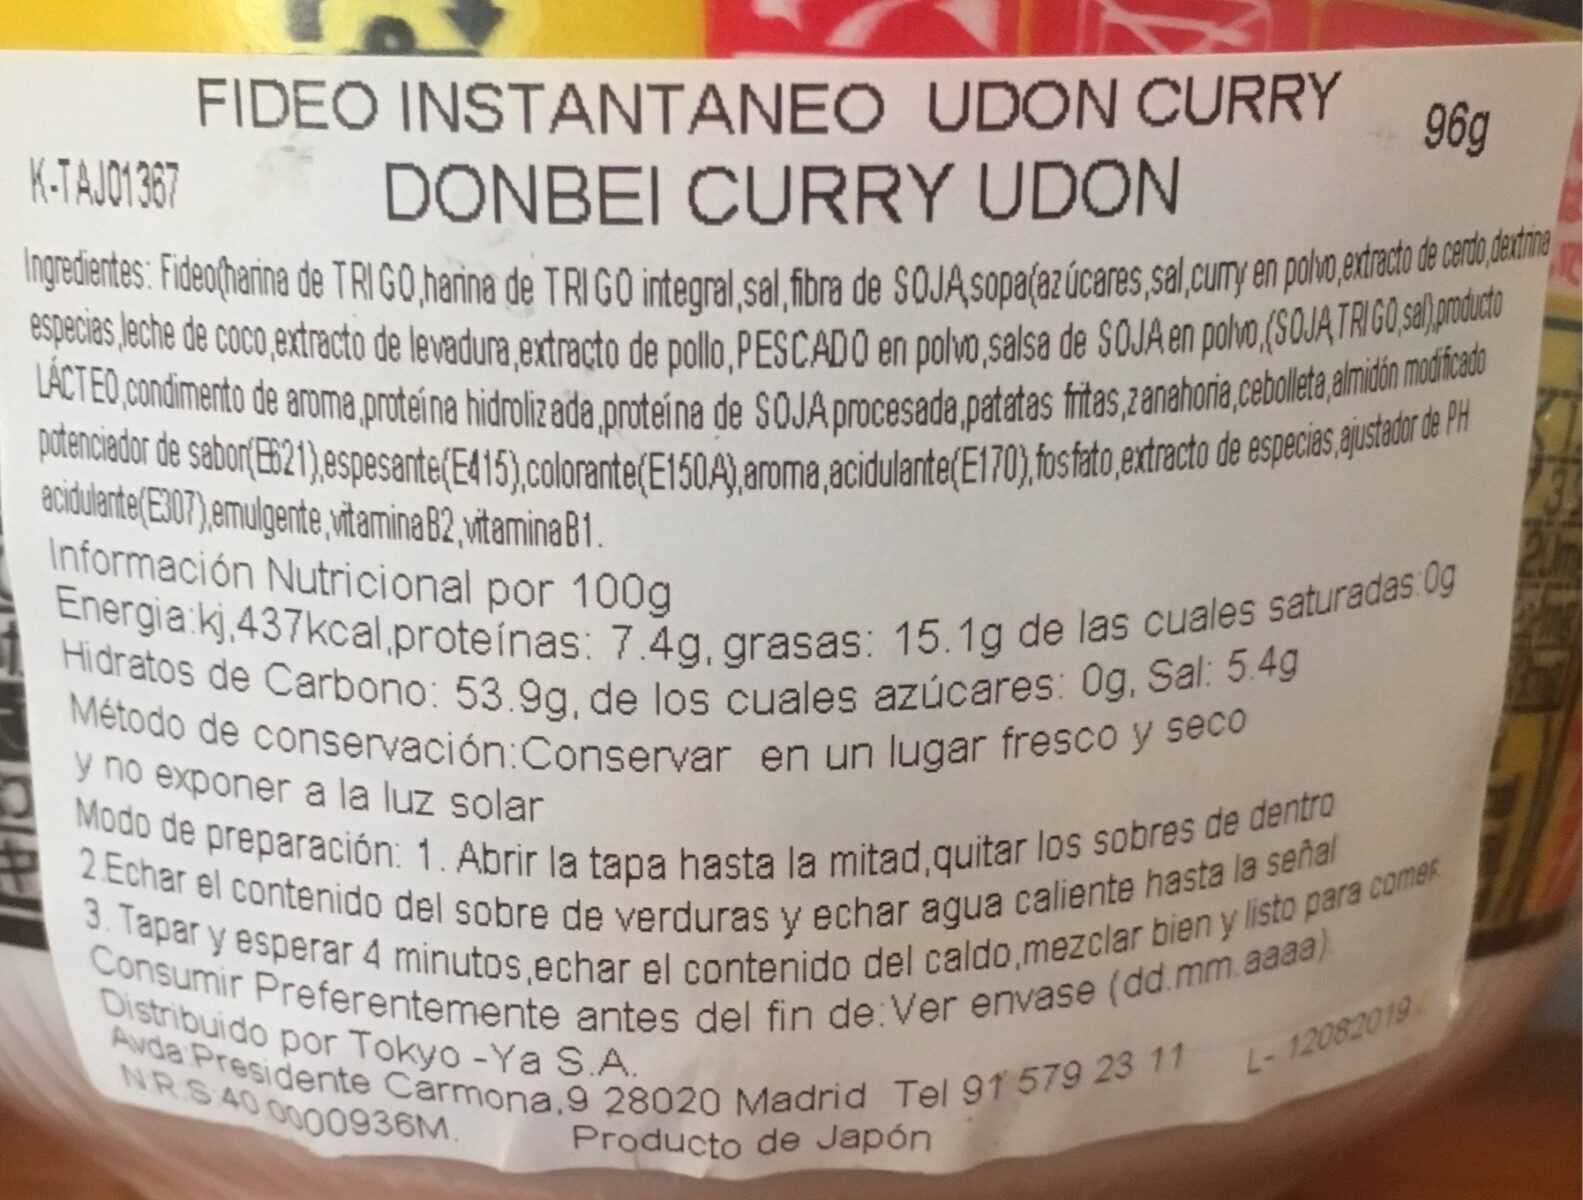 Fideo instantaneo udon curry - Informations nutritionnelles - es